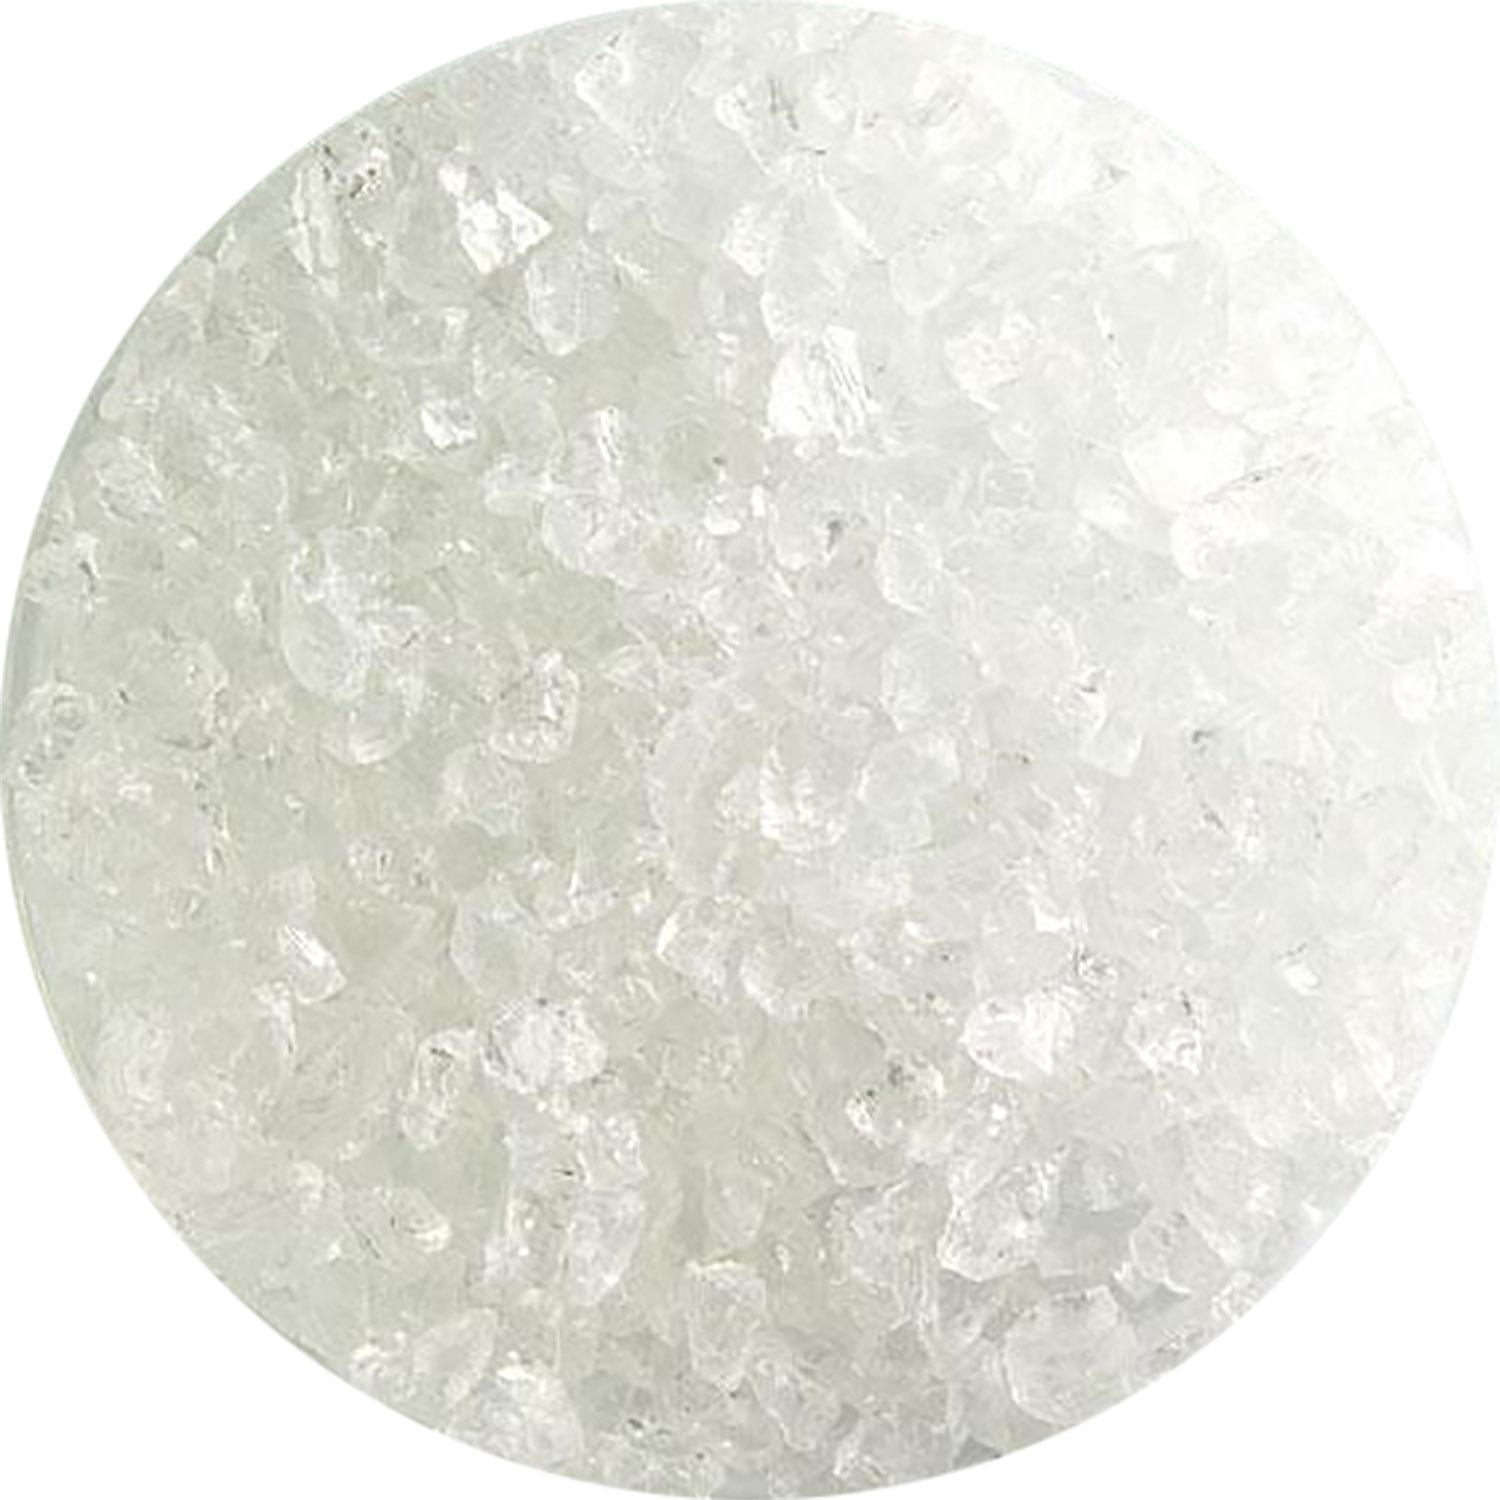 5 Oz Clear Transparent Coarse Frit - 90 COE